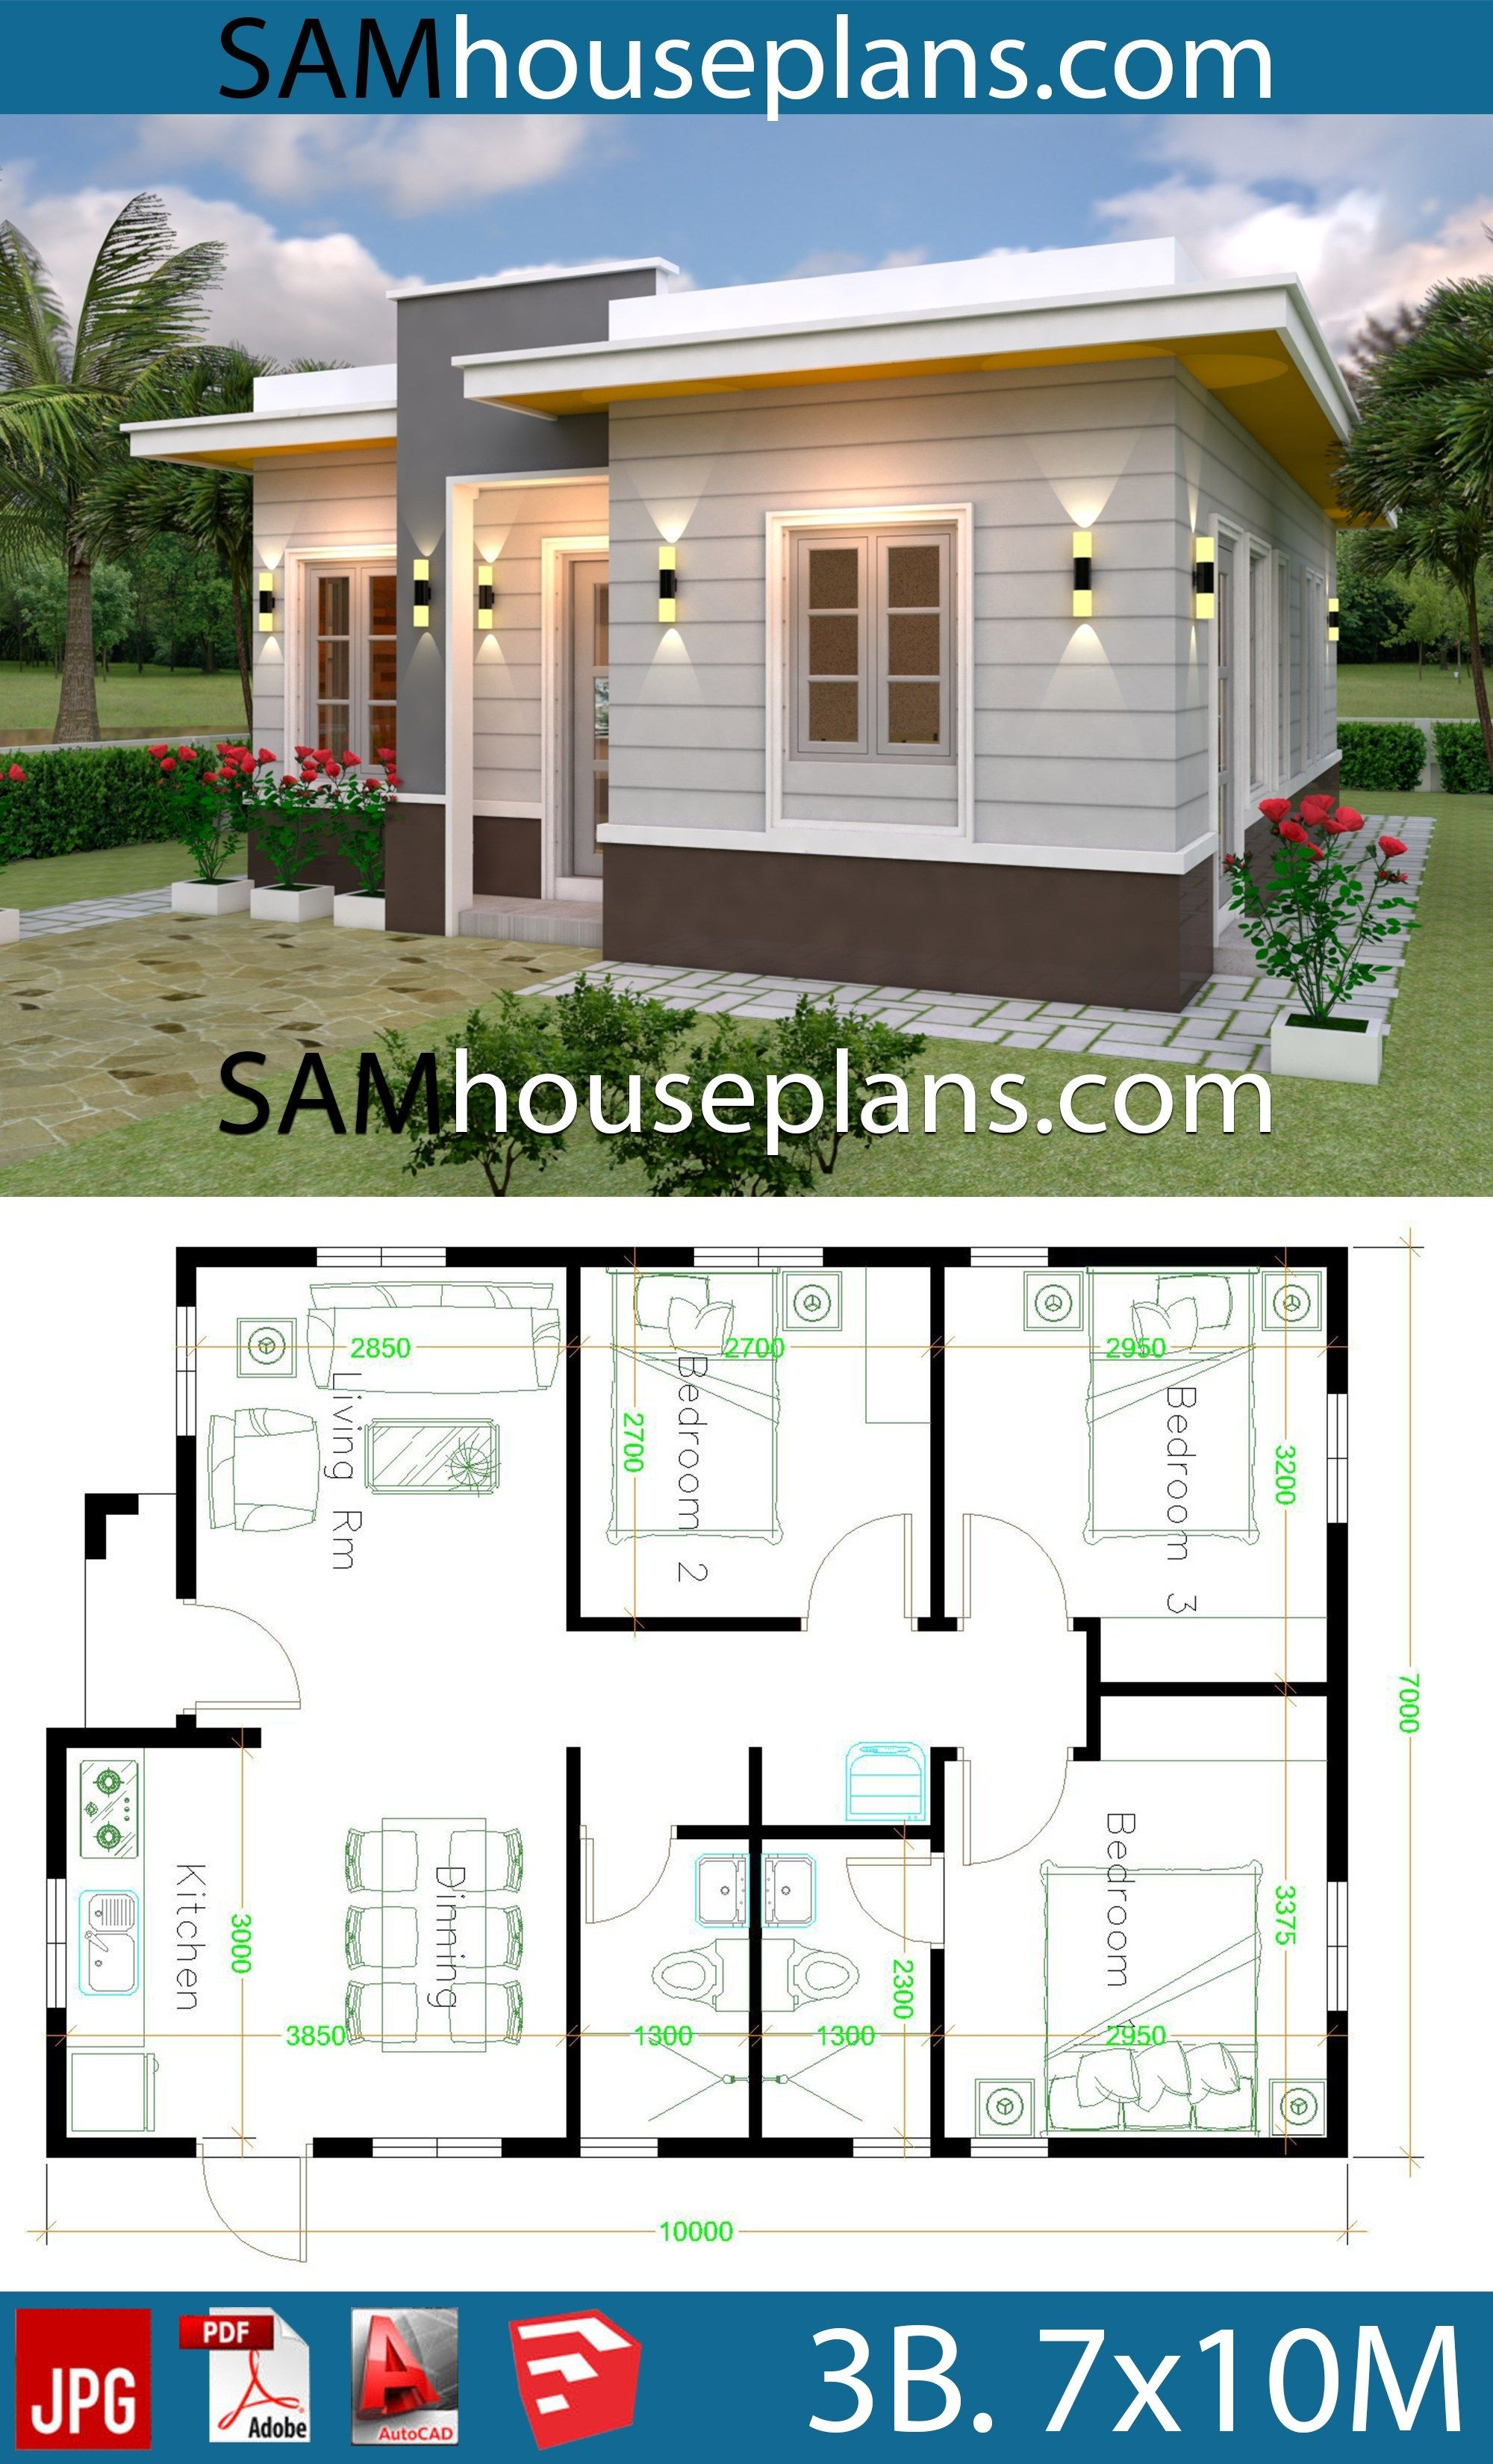 House Plans 7x10 With 3 Bedrooms With Terrace Roof Sam House Plans In 2020 My House Plans Simple House Design House Plan Gallery